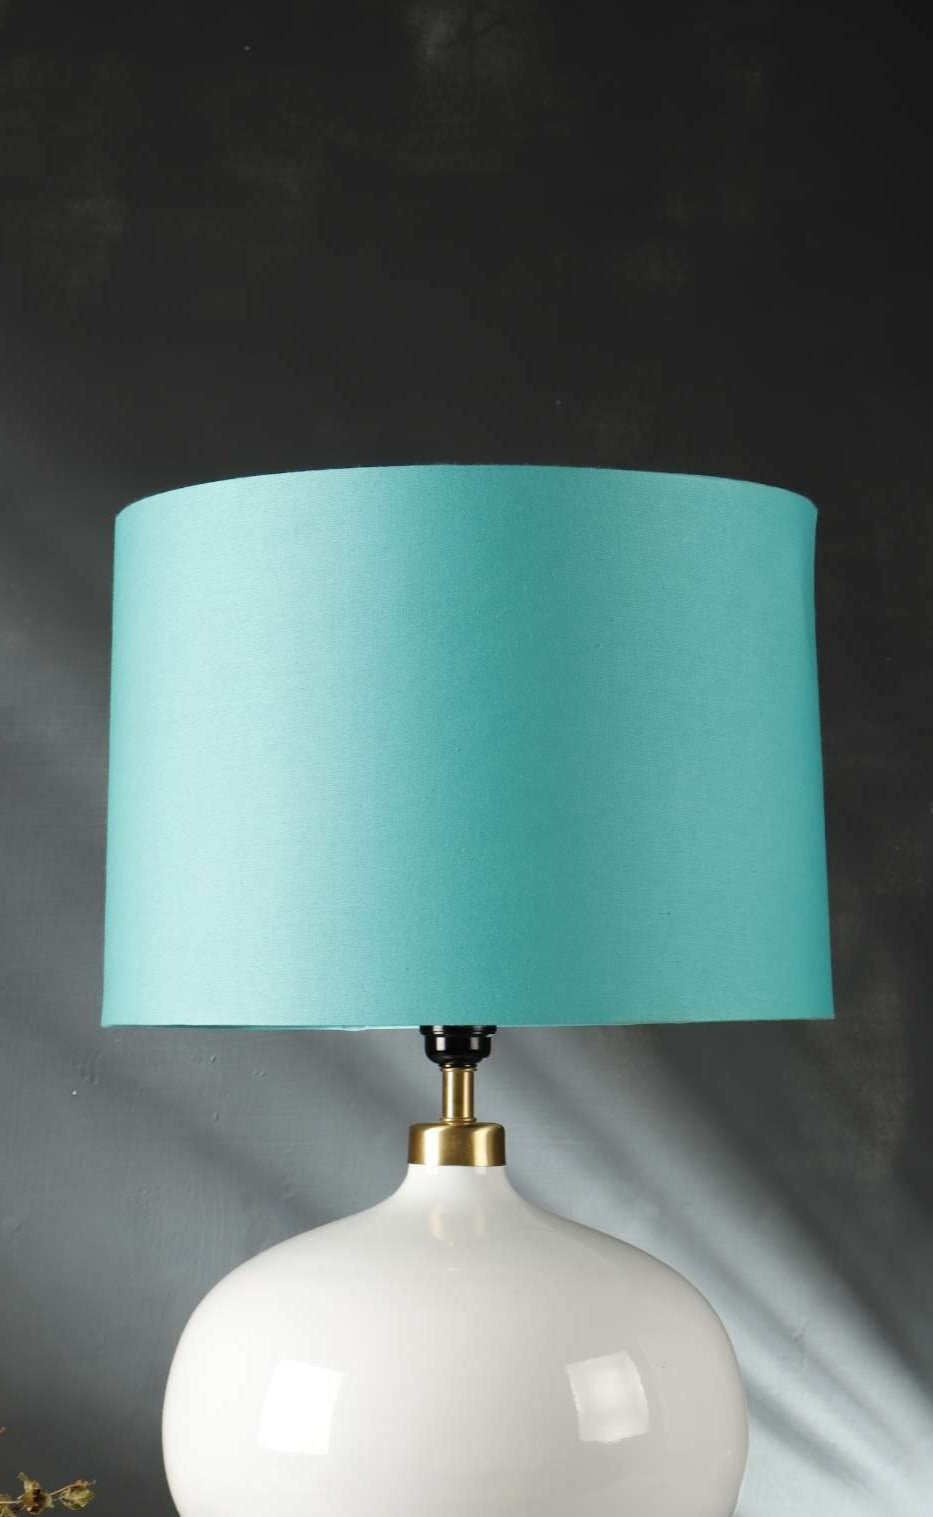 Turquoise Drum Cotton Lampshade for Table Lamp